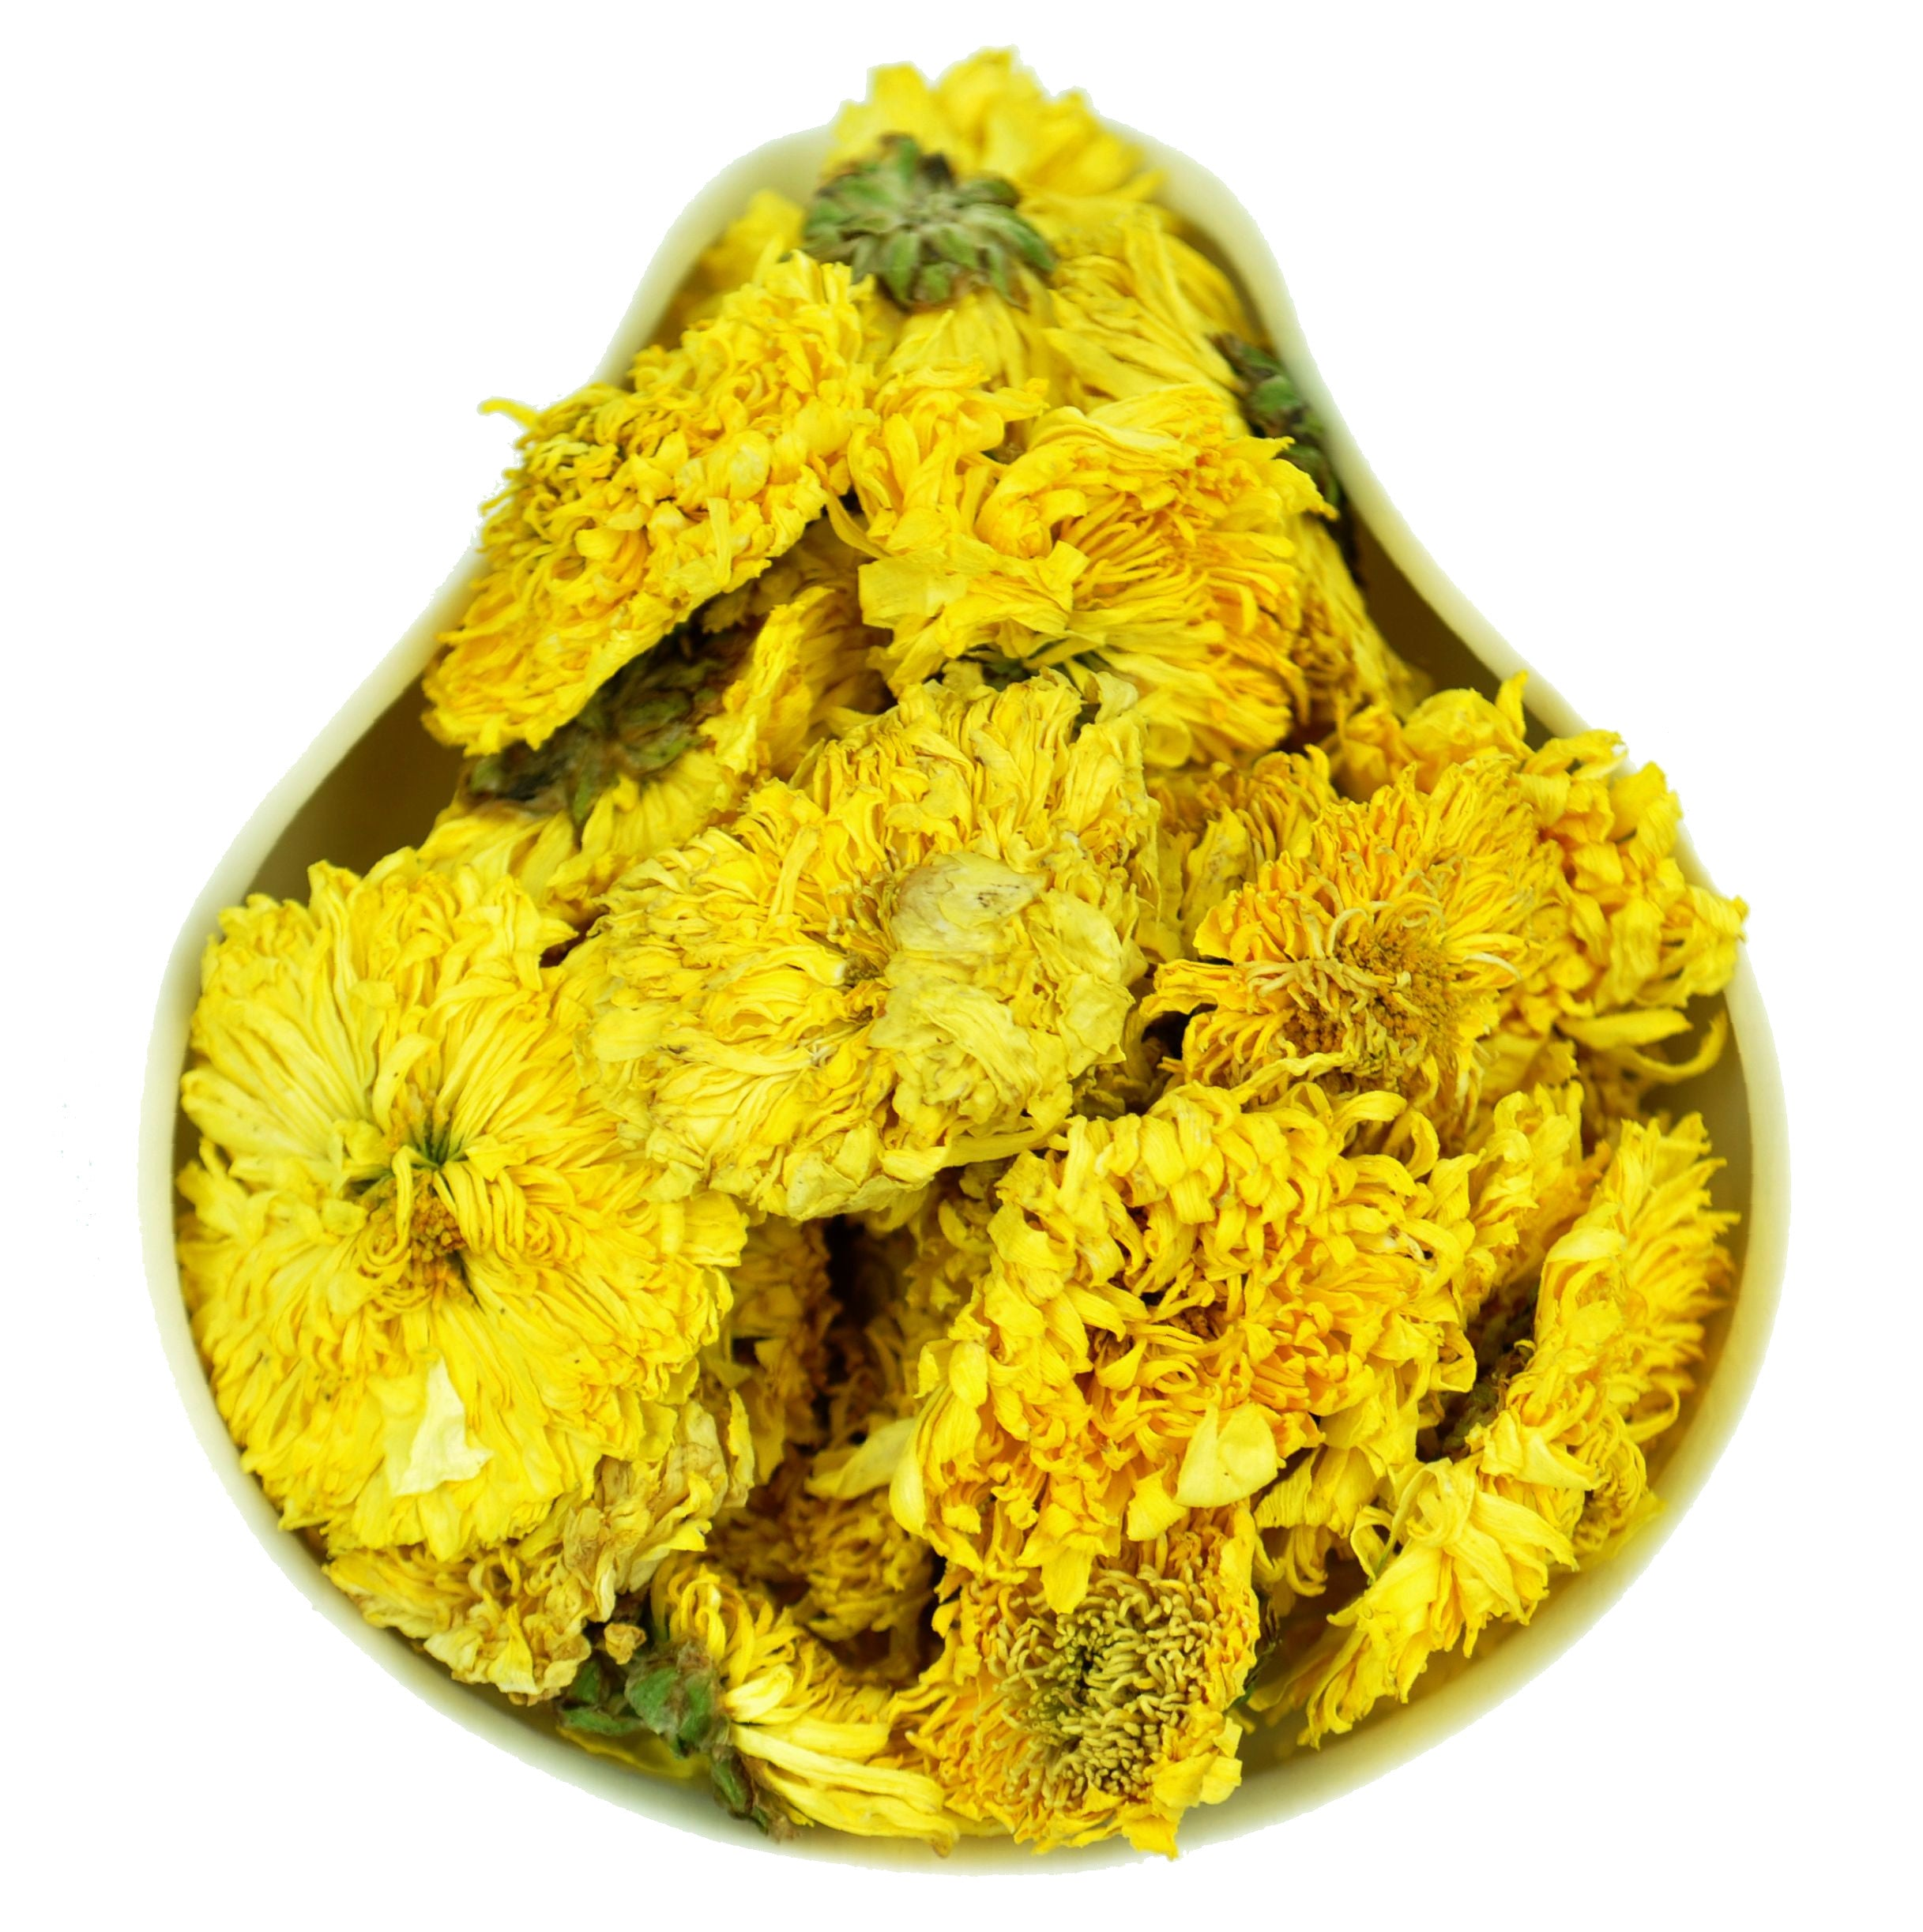 Huang shan emperors yellow chrysanthemum flower tea spring 2017 huang shan emperors yellow chrysanthemum flower tea spring 2017 mightylinksfo